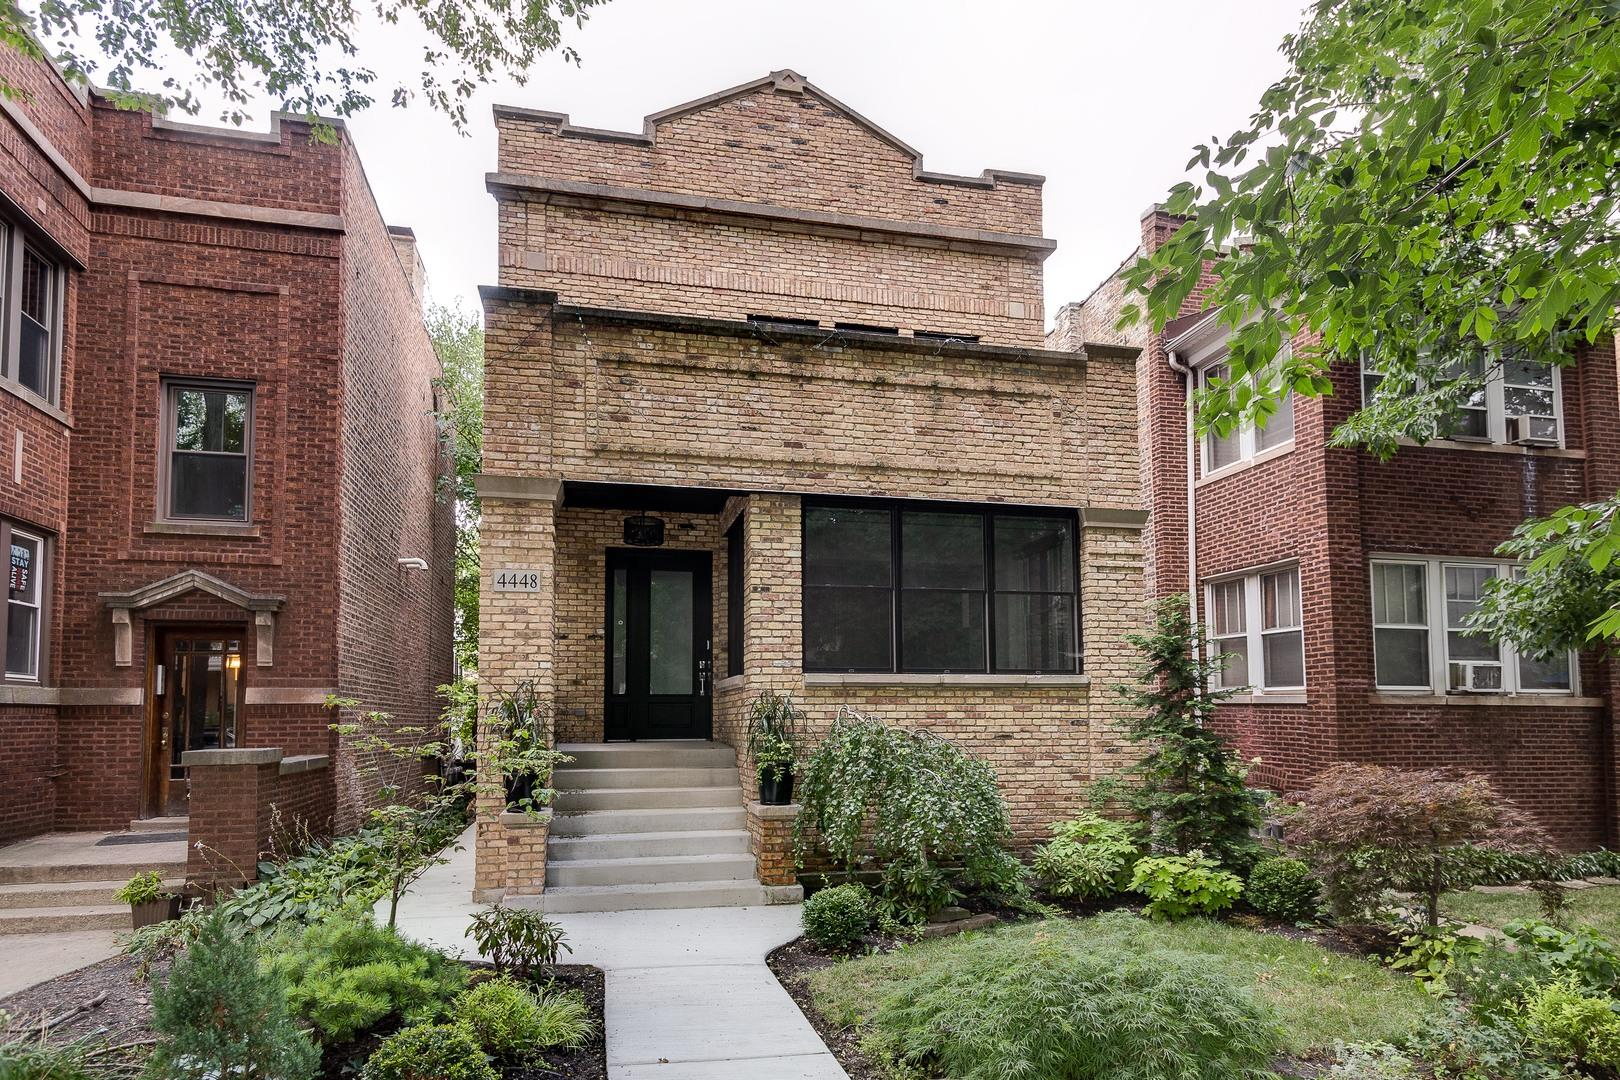 4448 N California Avenue, Chicago, IL 60625 - #: 10880632